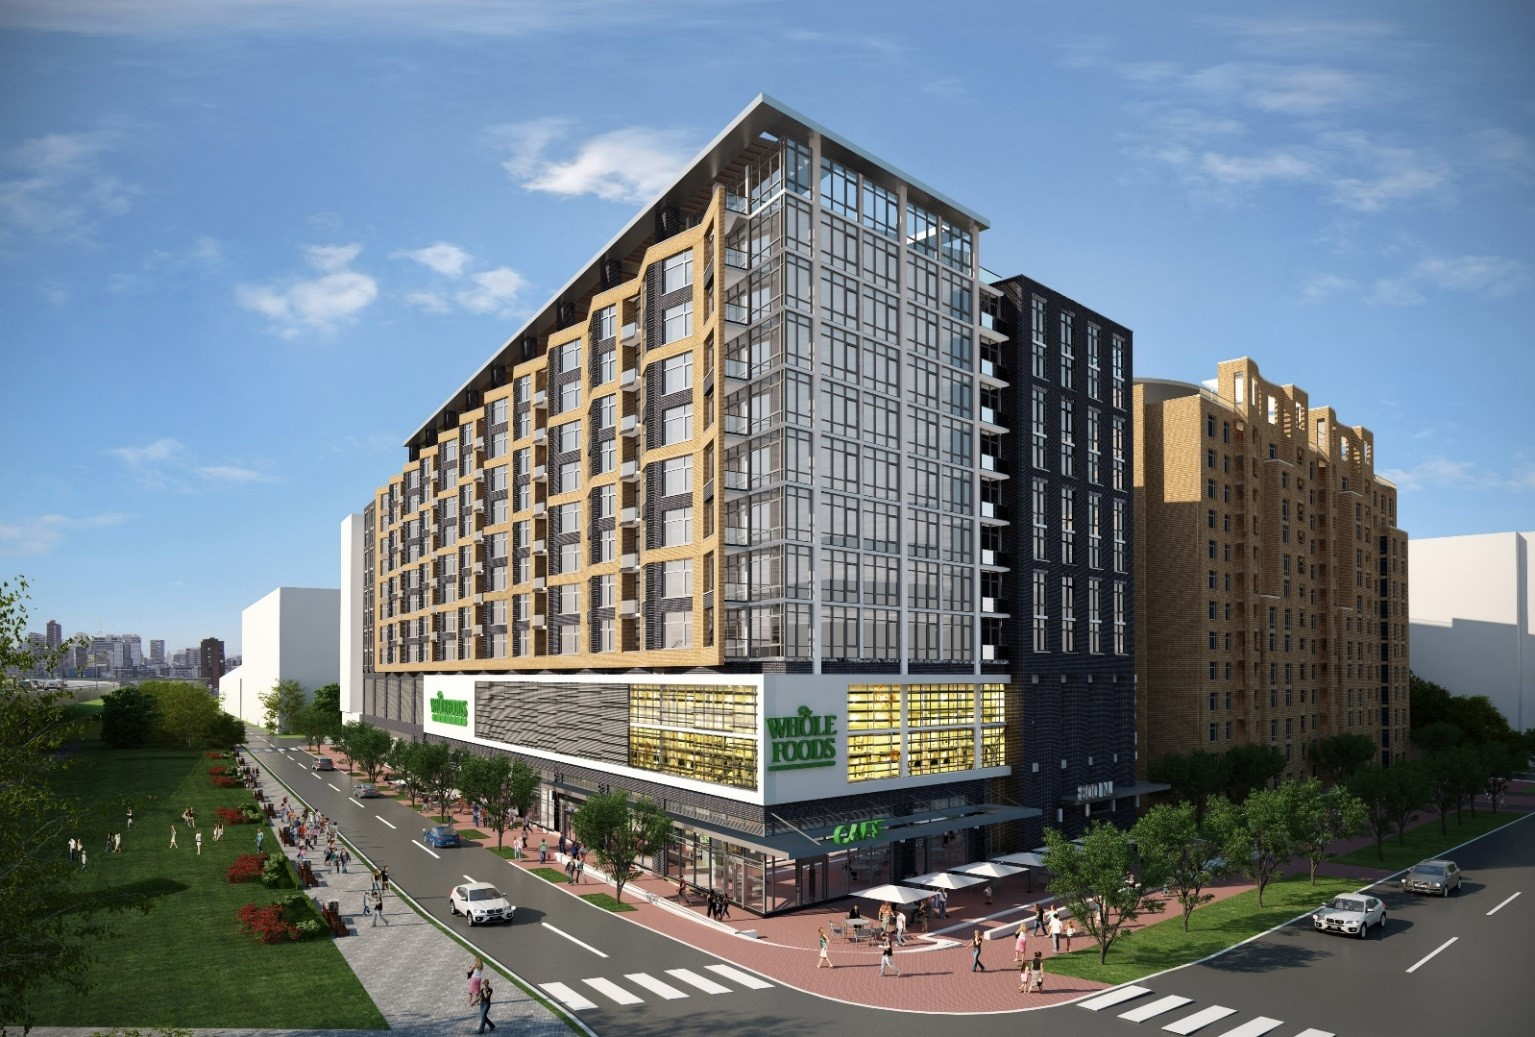 Construction Begins at 800 New Jersey Ave